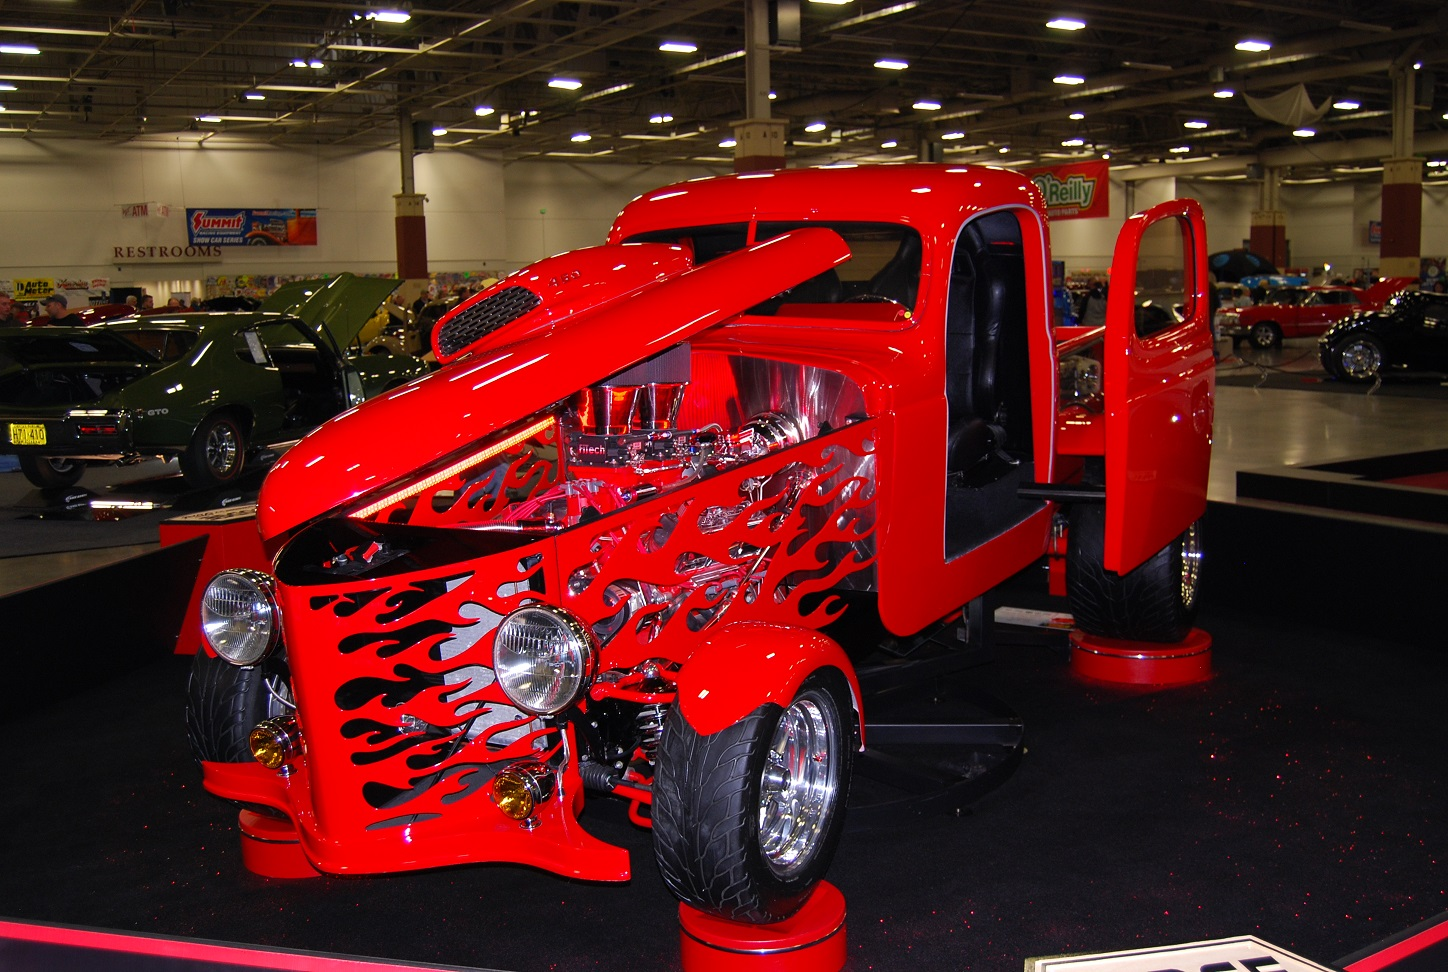 This wild 1942 Dodge truck called Mirror Image was featured at WOW with plasma-cut flames in the hood sides and grille